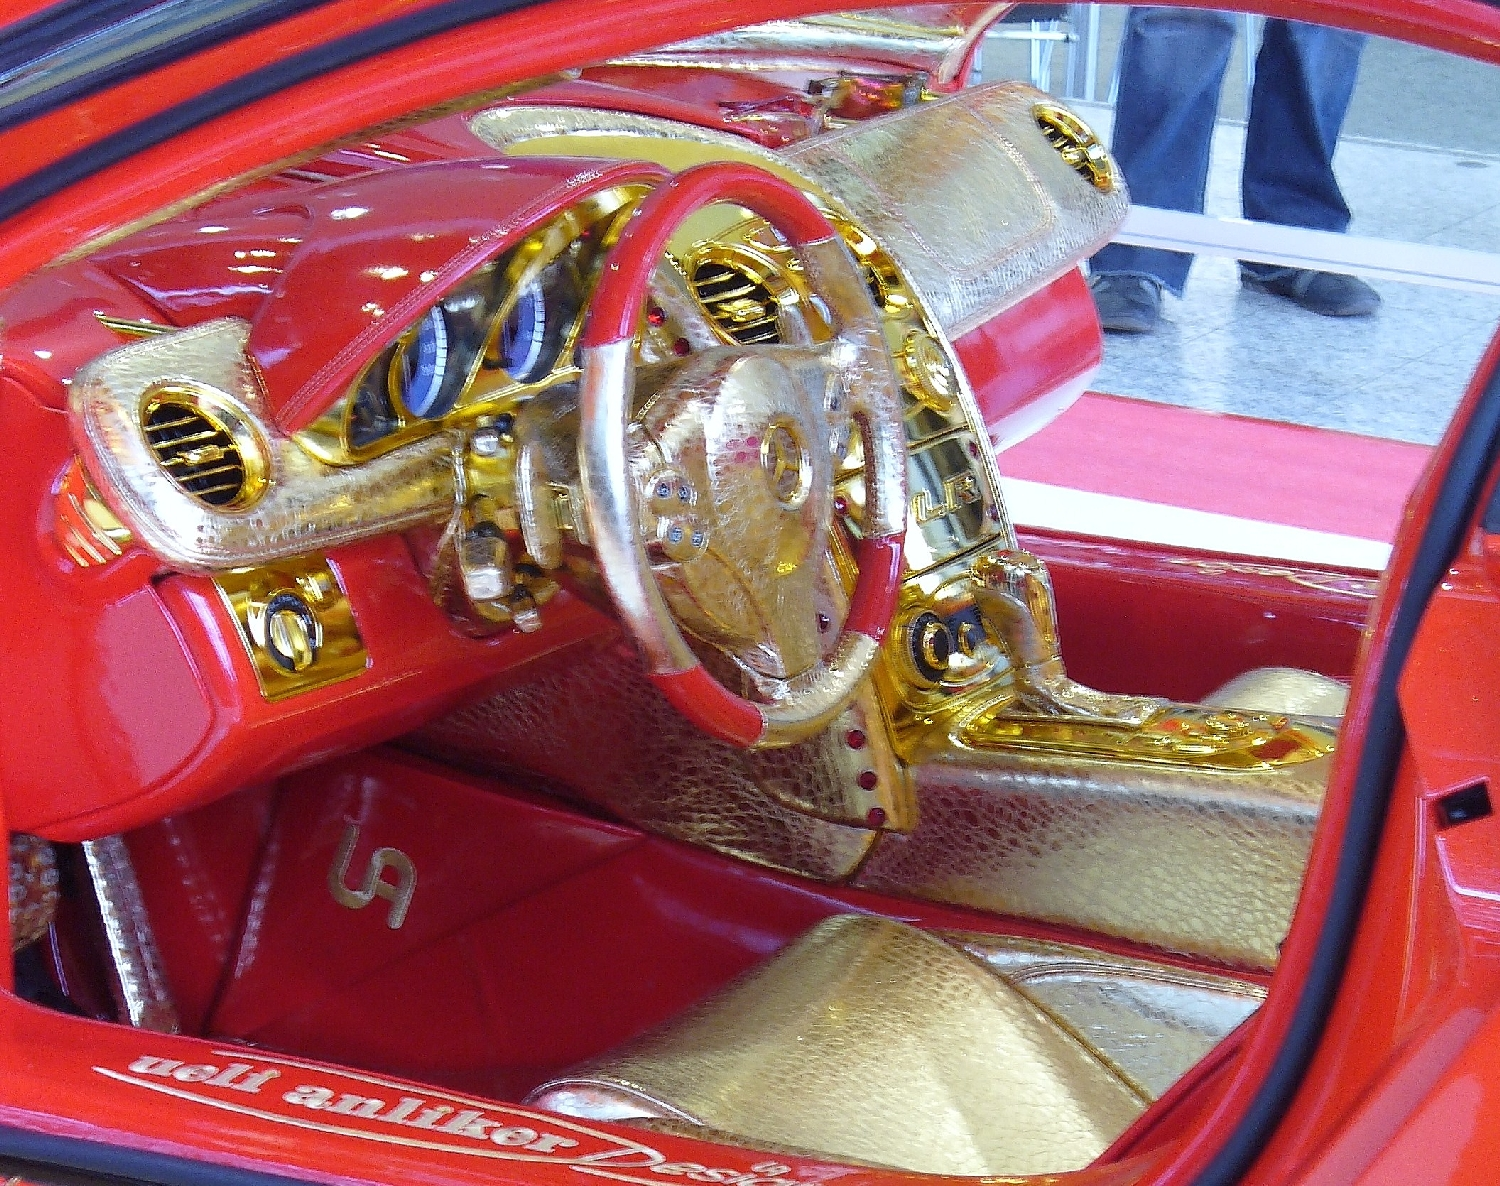 File anliker slr 999 red gold dream interieur for Interieur 607